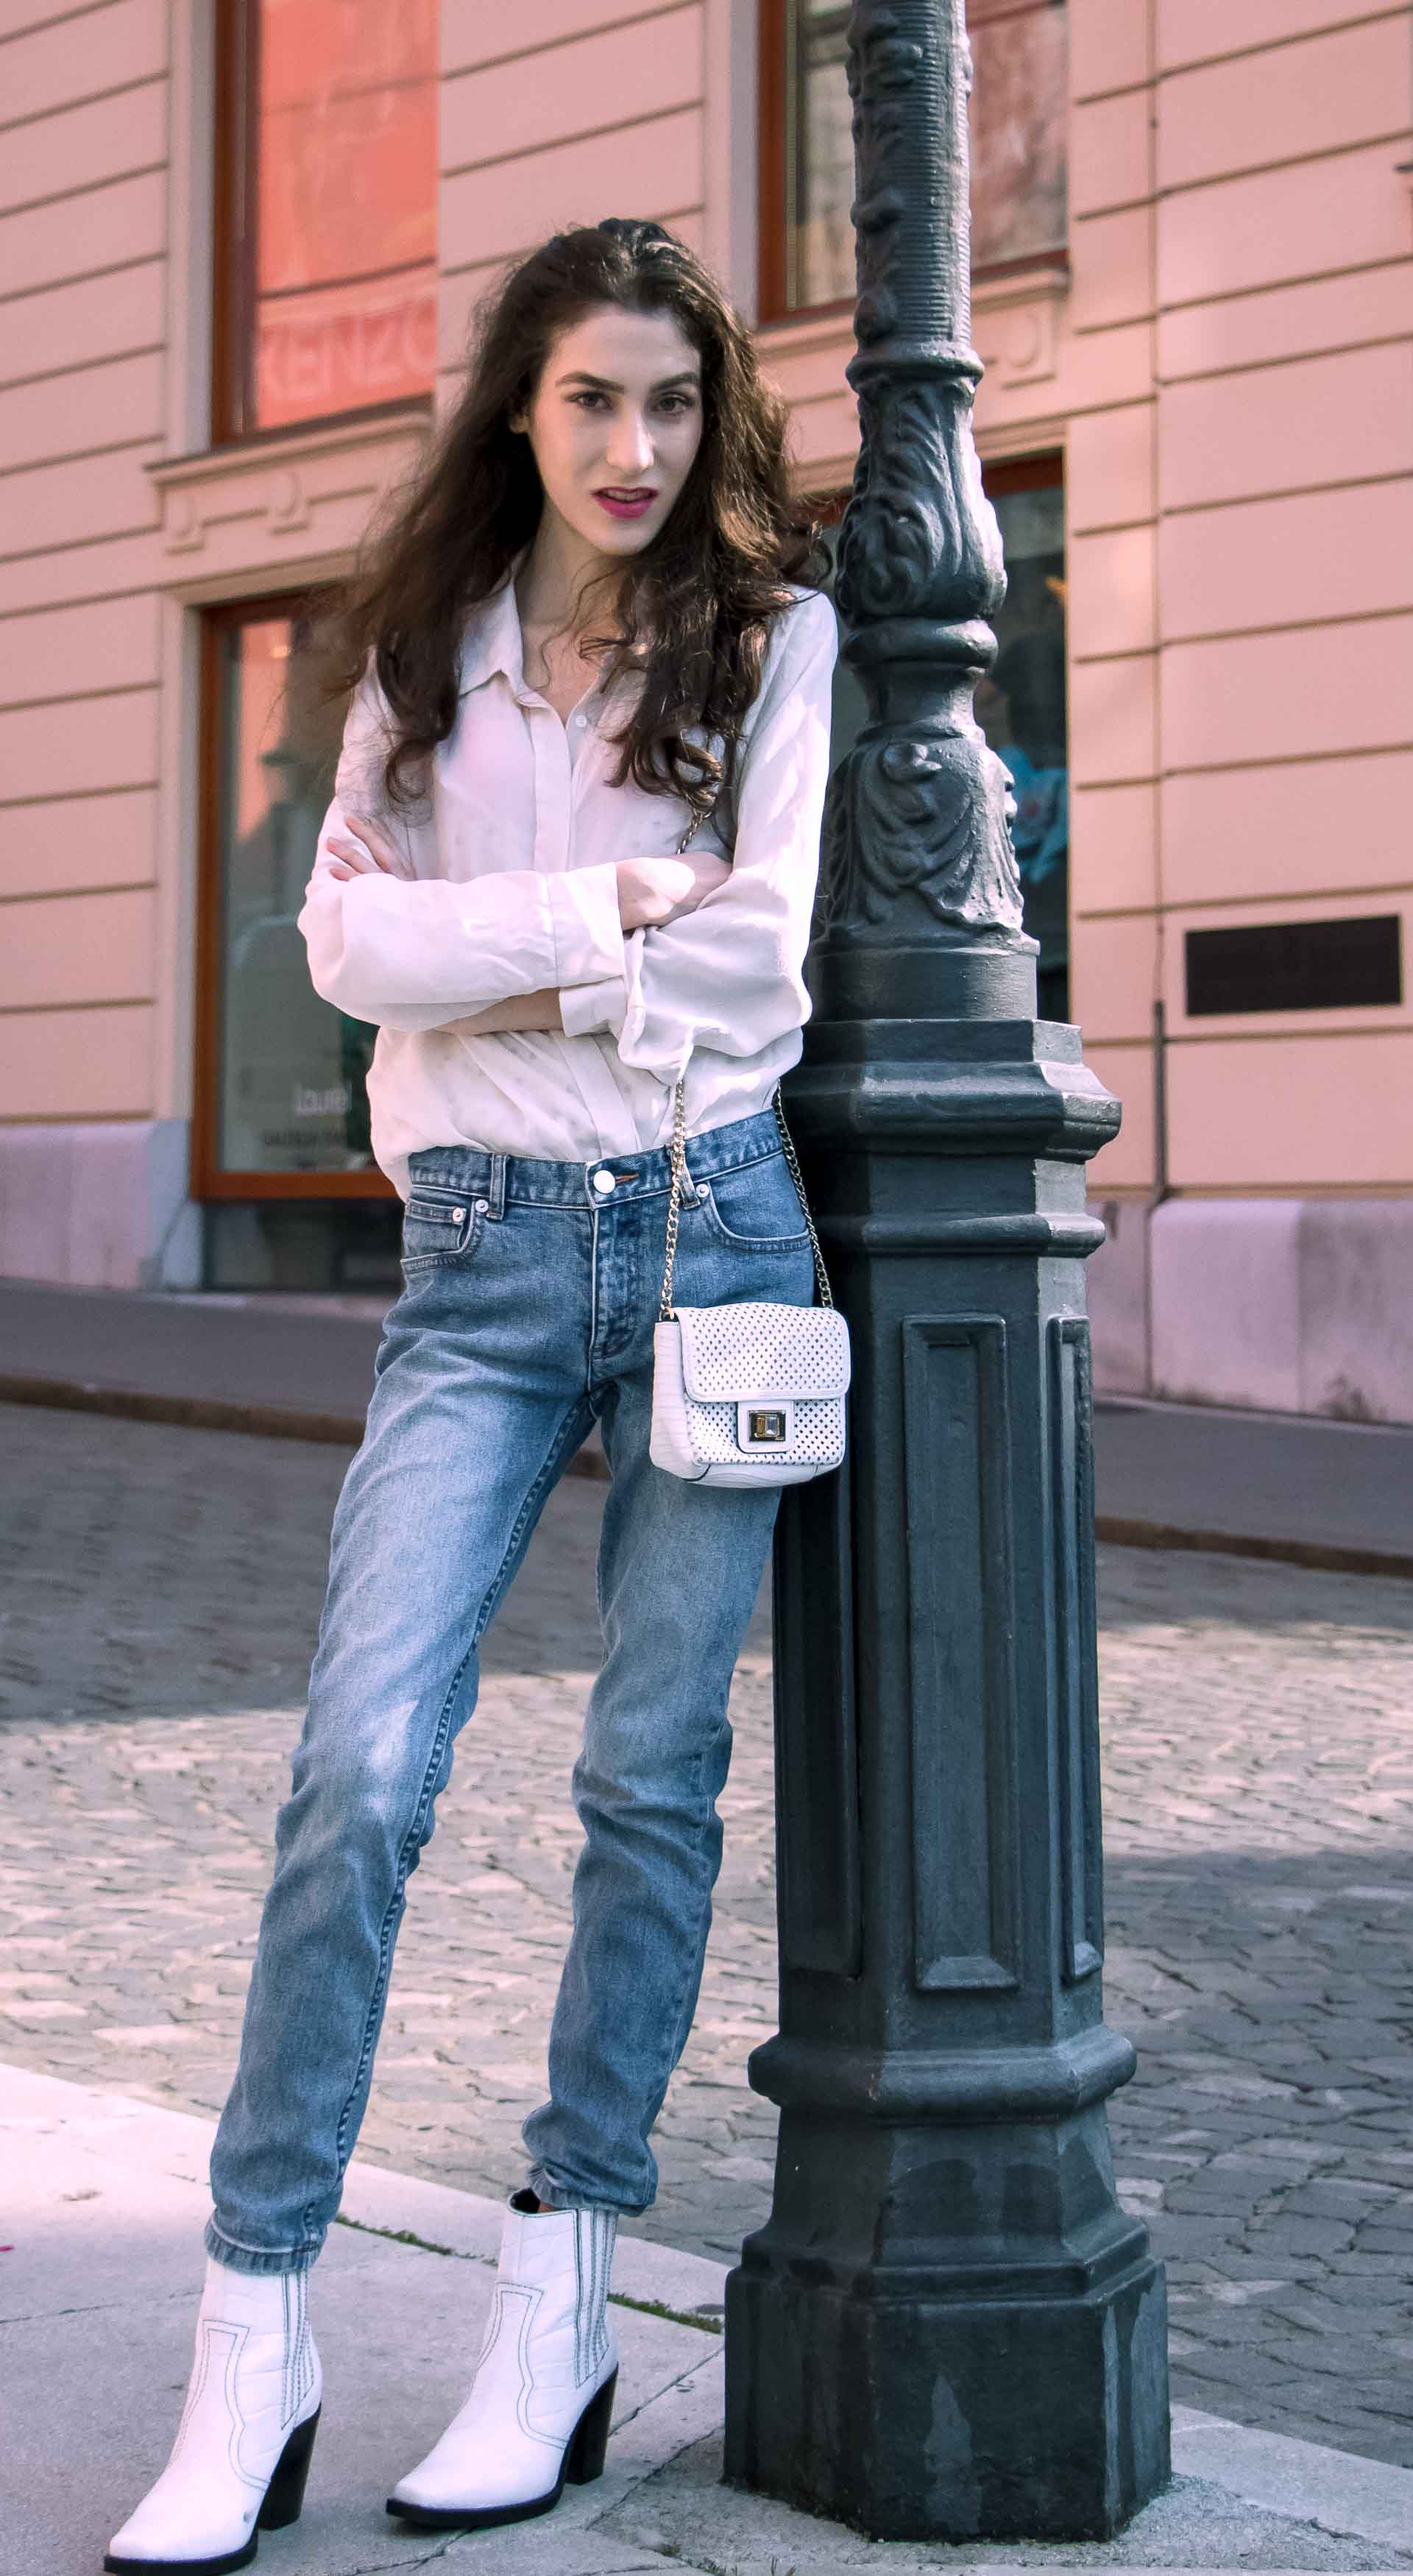 Beautiful Slovenian Fashion Blogger Veronika Lipar of Brunette from Wall dressed in white silk shirt from Sandro Paris, white and black polka dot cami slip top, A.P.C. light blue jeans, white Ganni Western boots, chain strap shoulder bag leaning on the street lamp